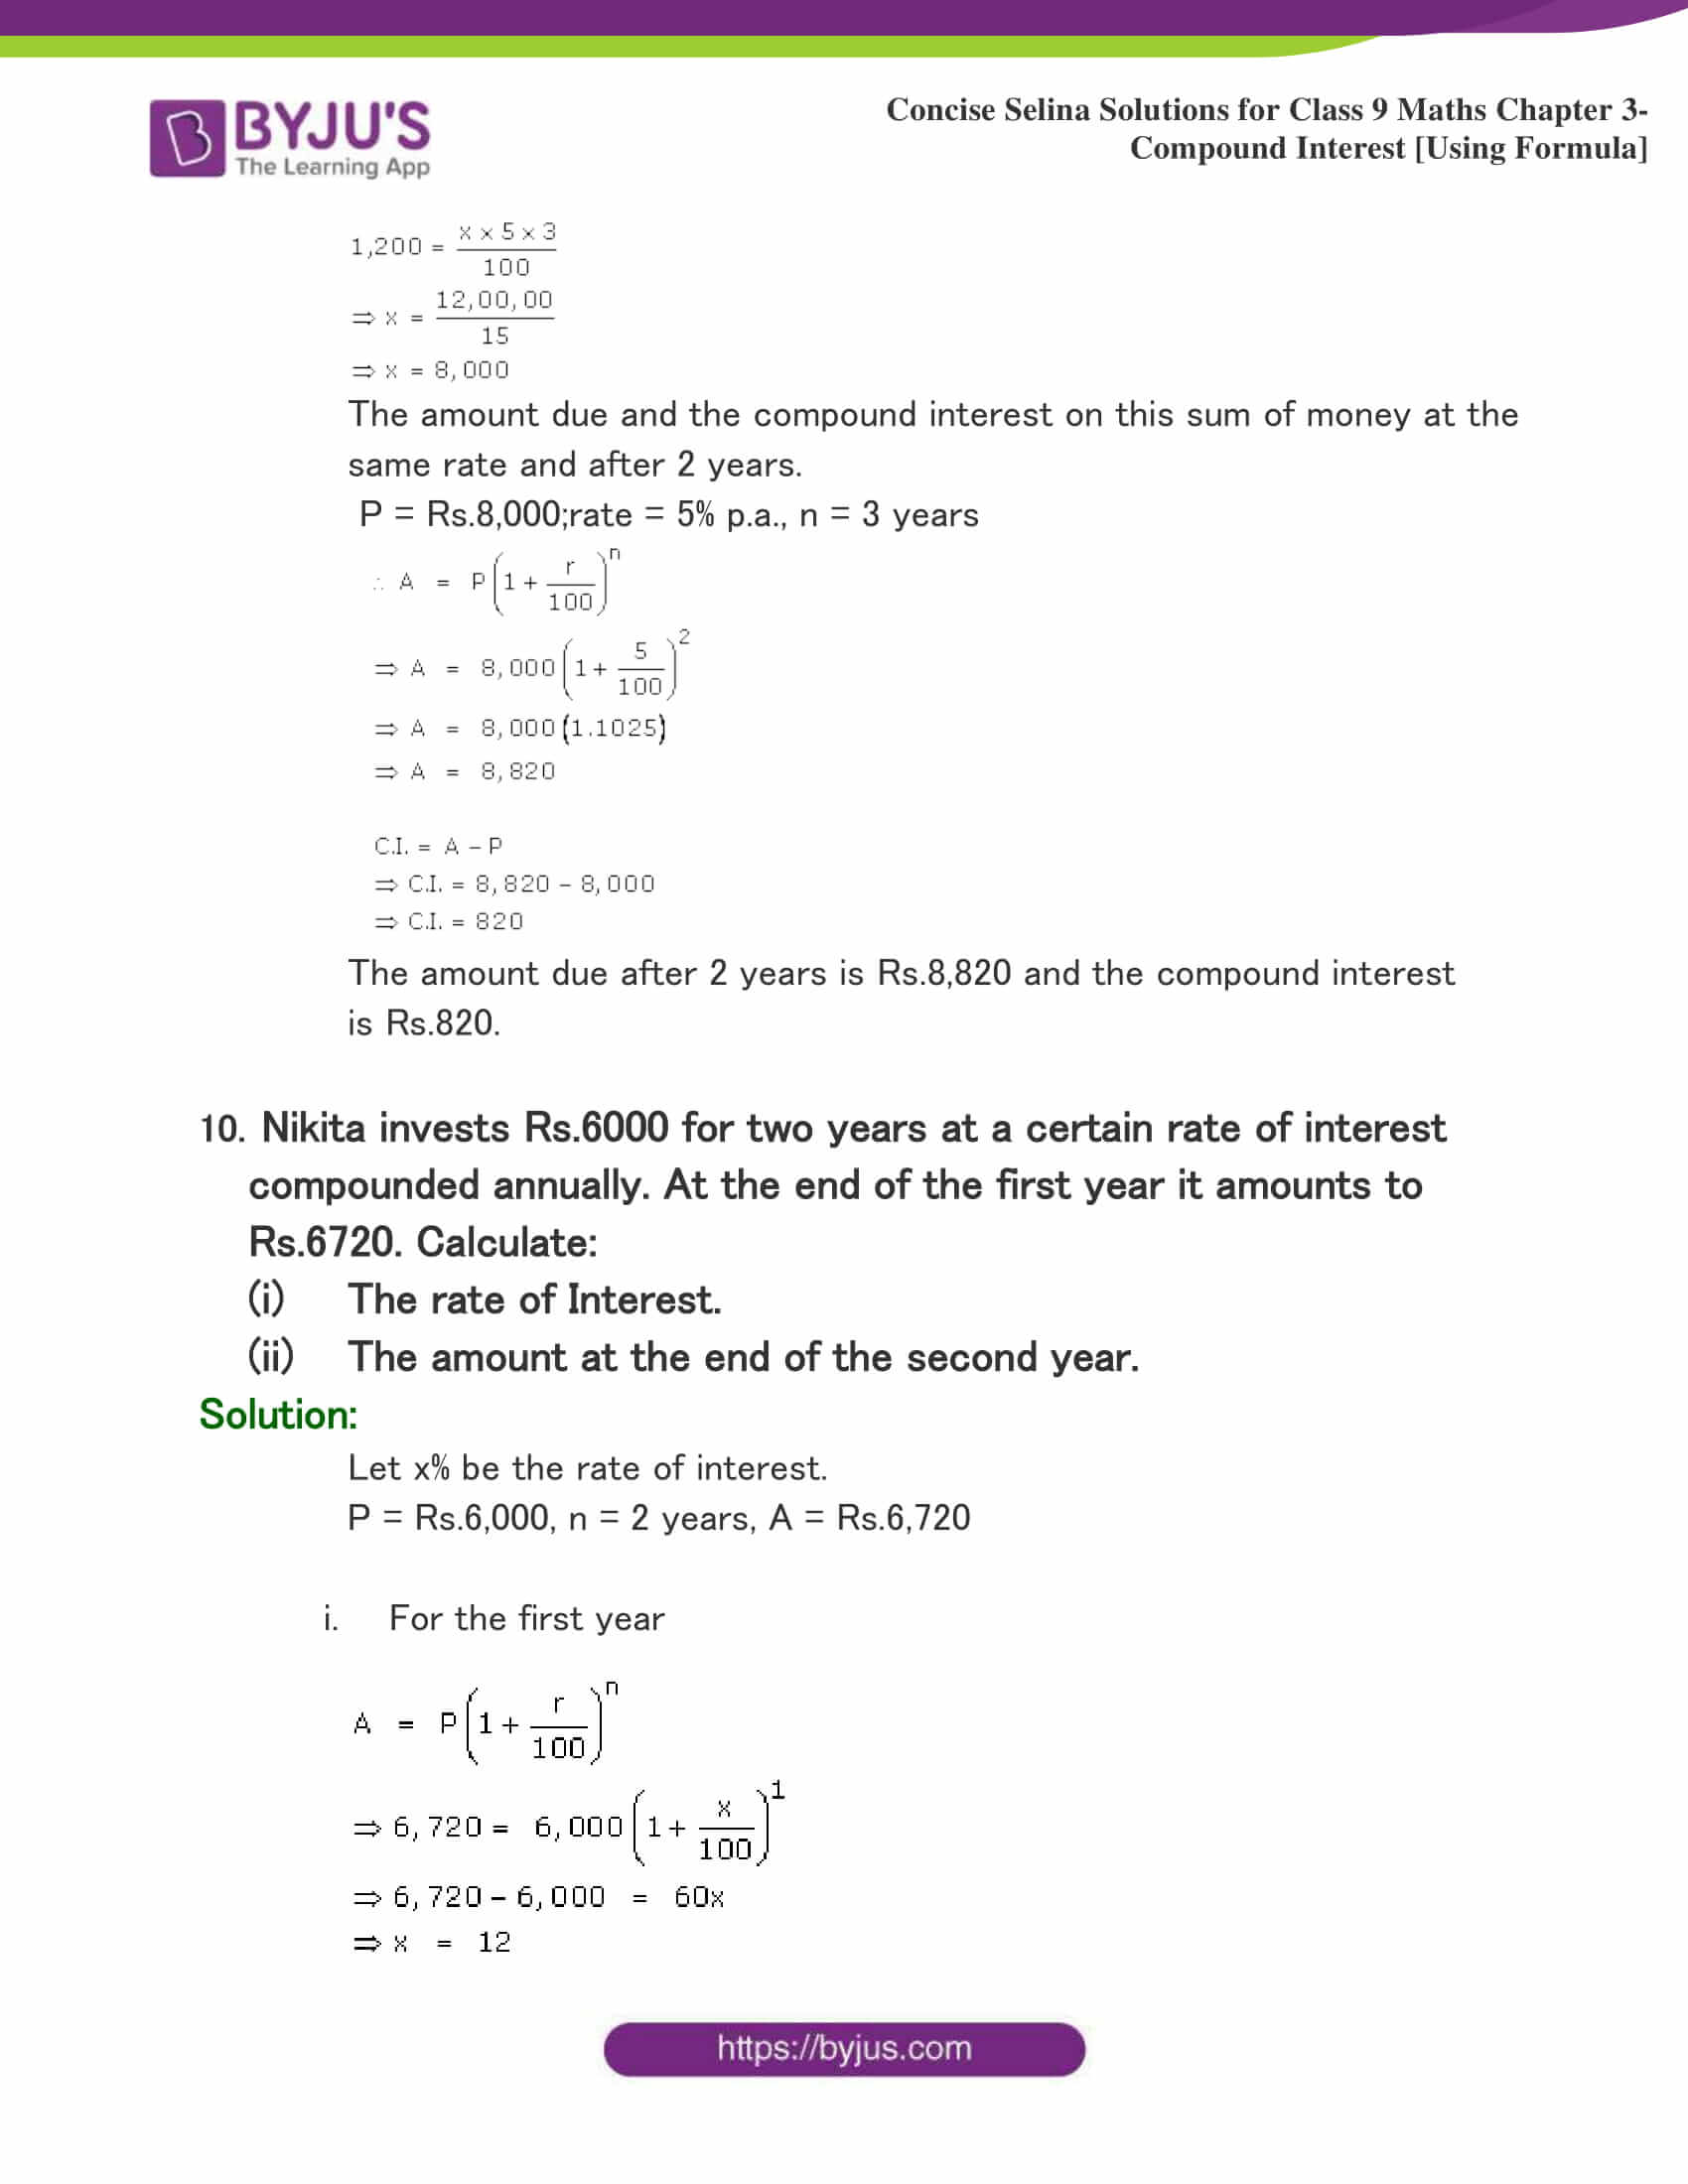 Selina Solutions Class 9 Maths Chapter 3 Compound Interest Using Formula part 41